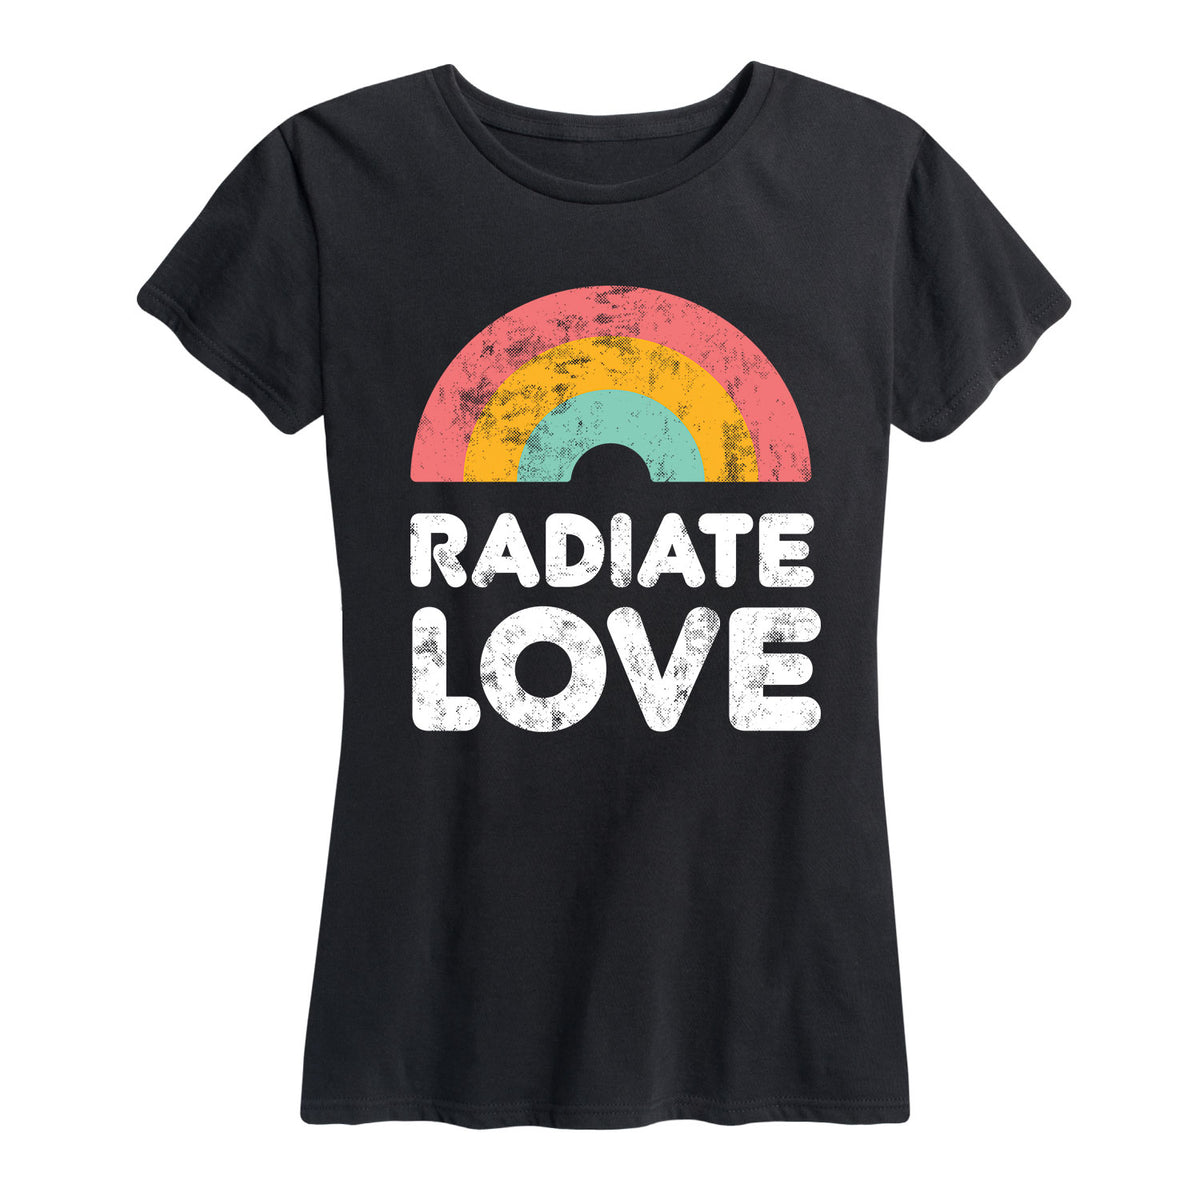 Radiate Love - Women's Short Sleeve T-Shirt